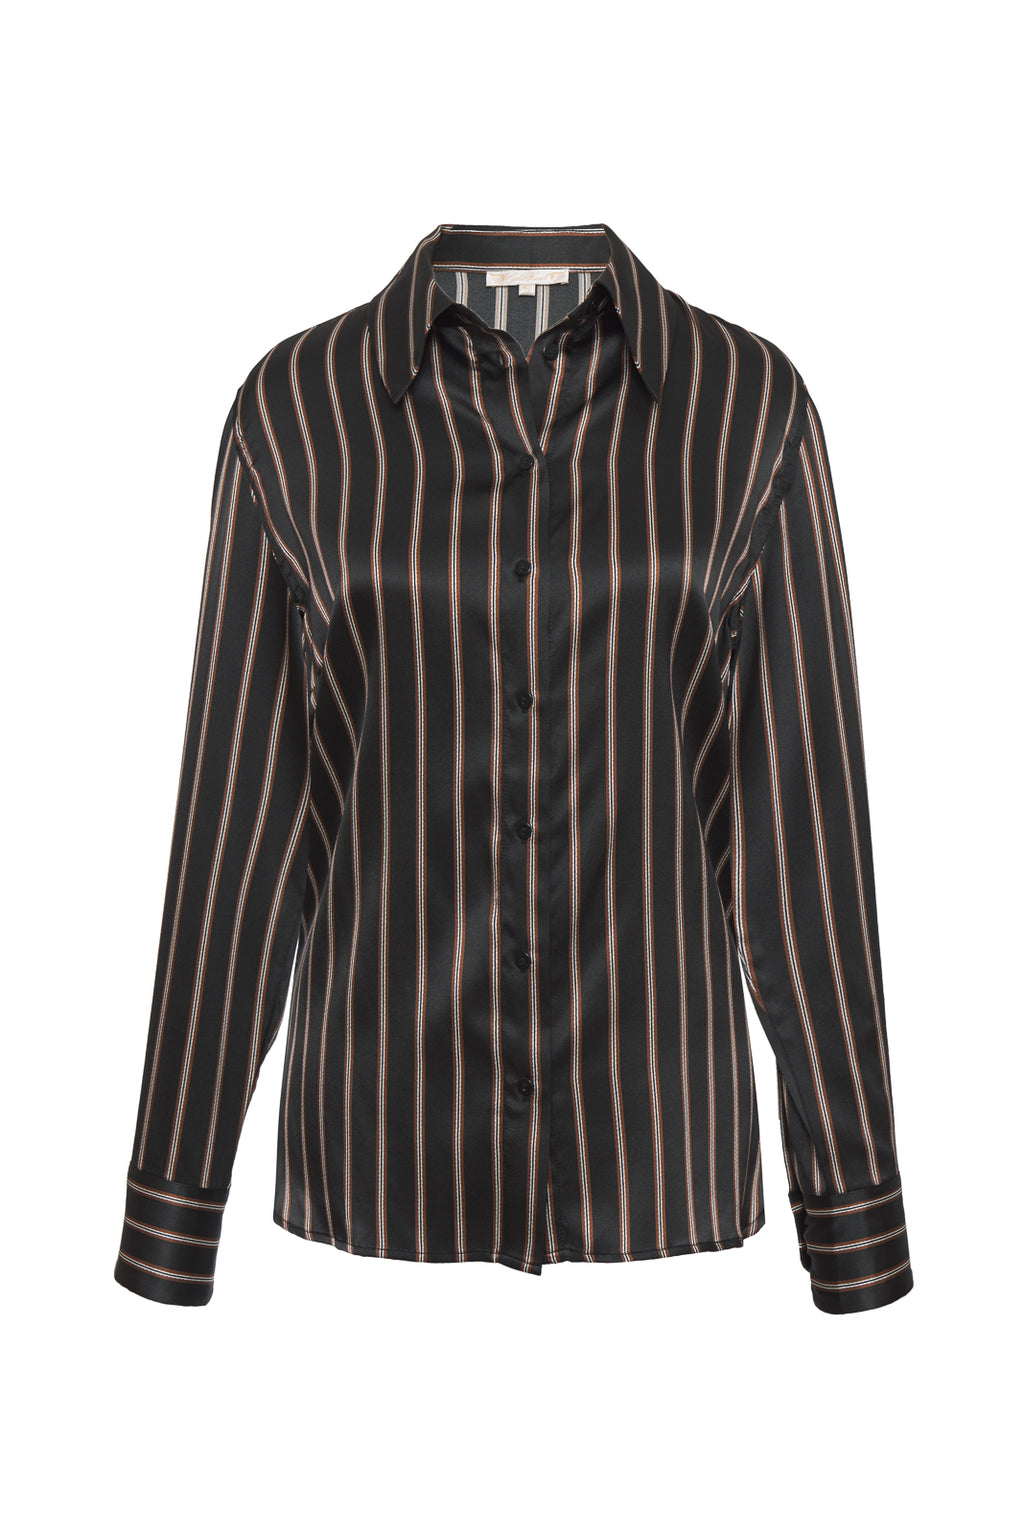 Farrah Stripe Shirt